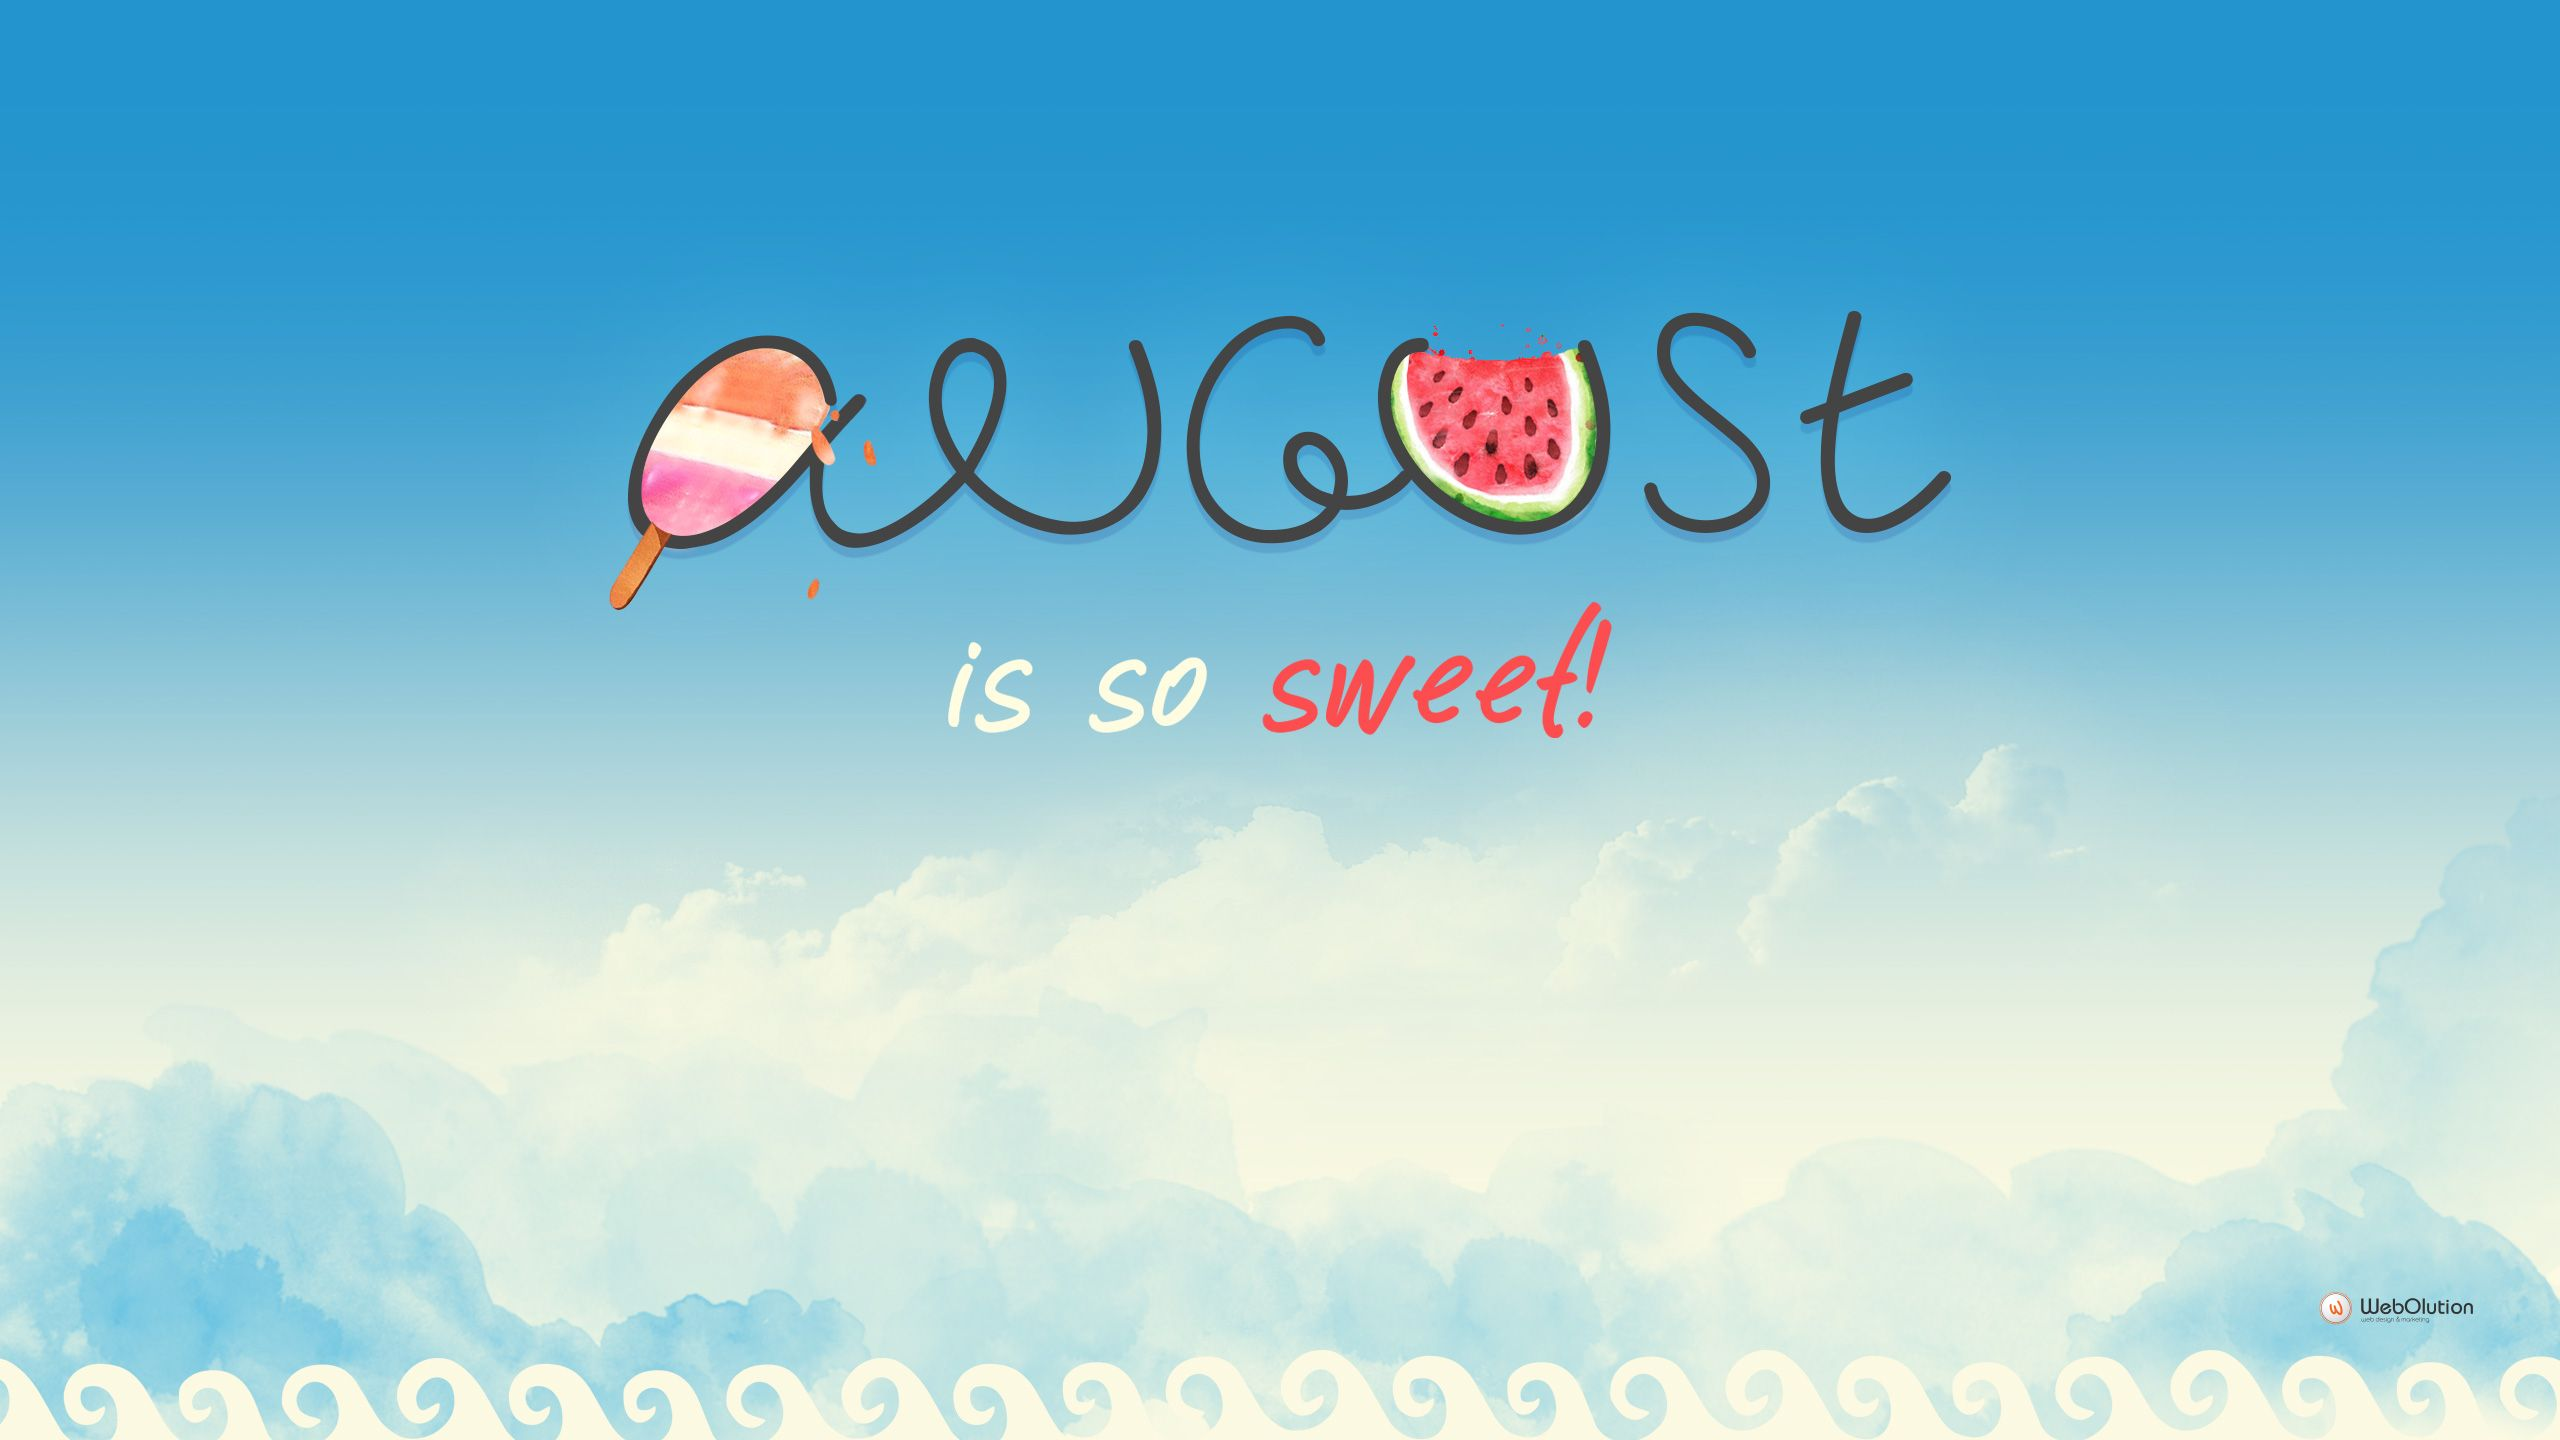 August Wallpapers   Top August Backgrounds   WallpaperAccess 2560x1440